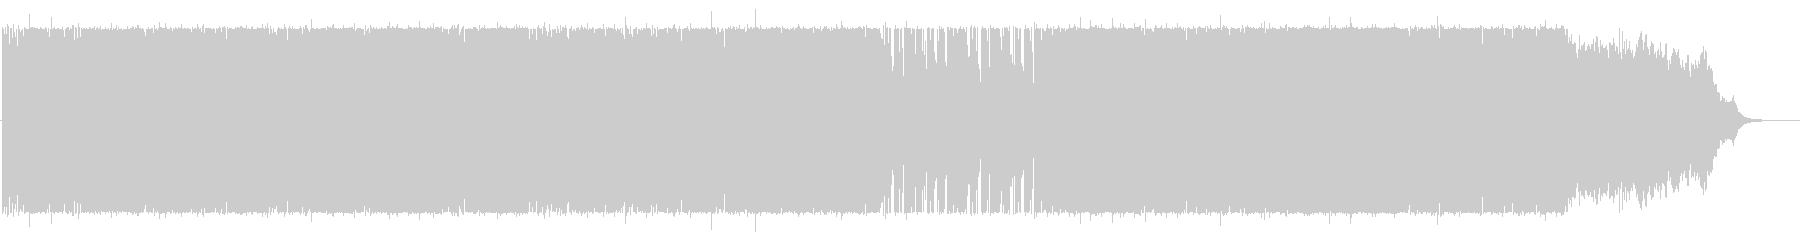 BGM of exotic atmosphere's unreproduced waveform